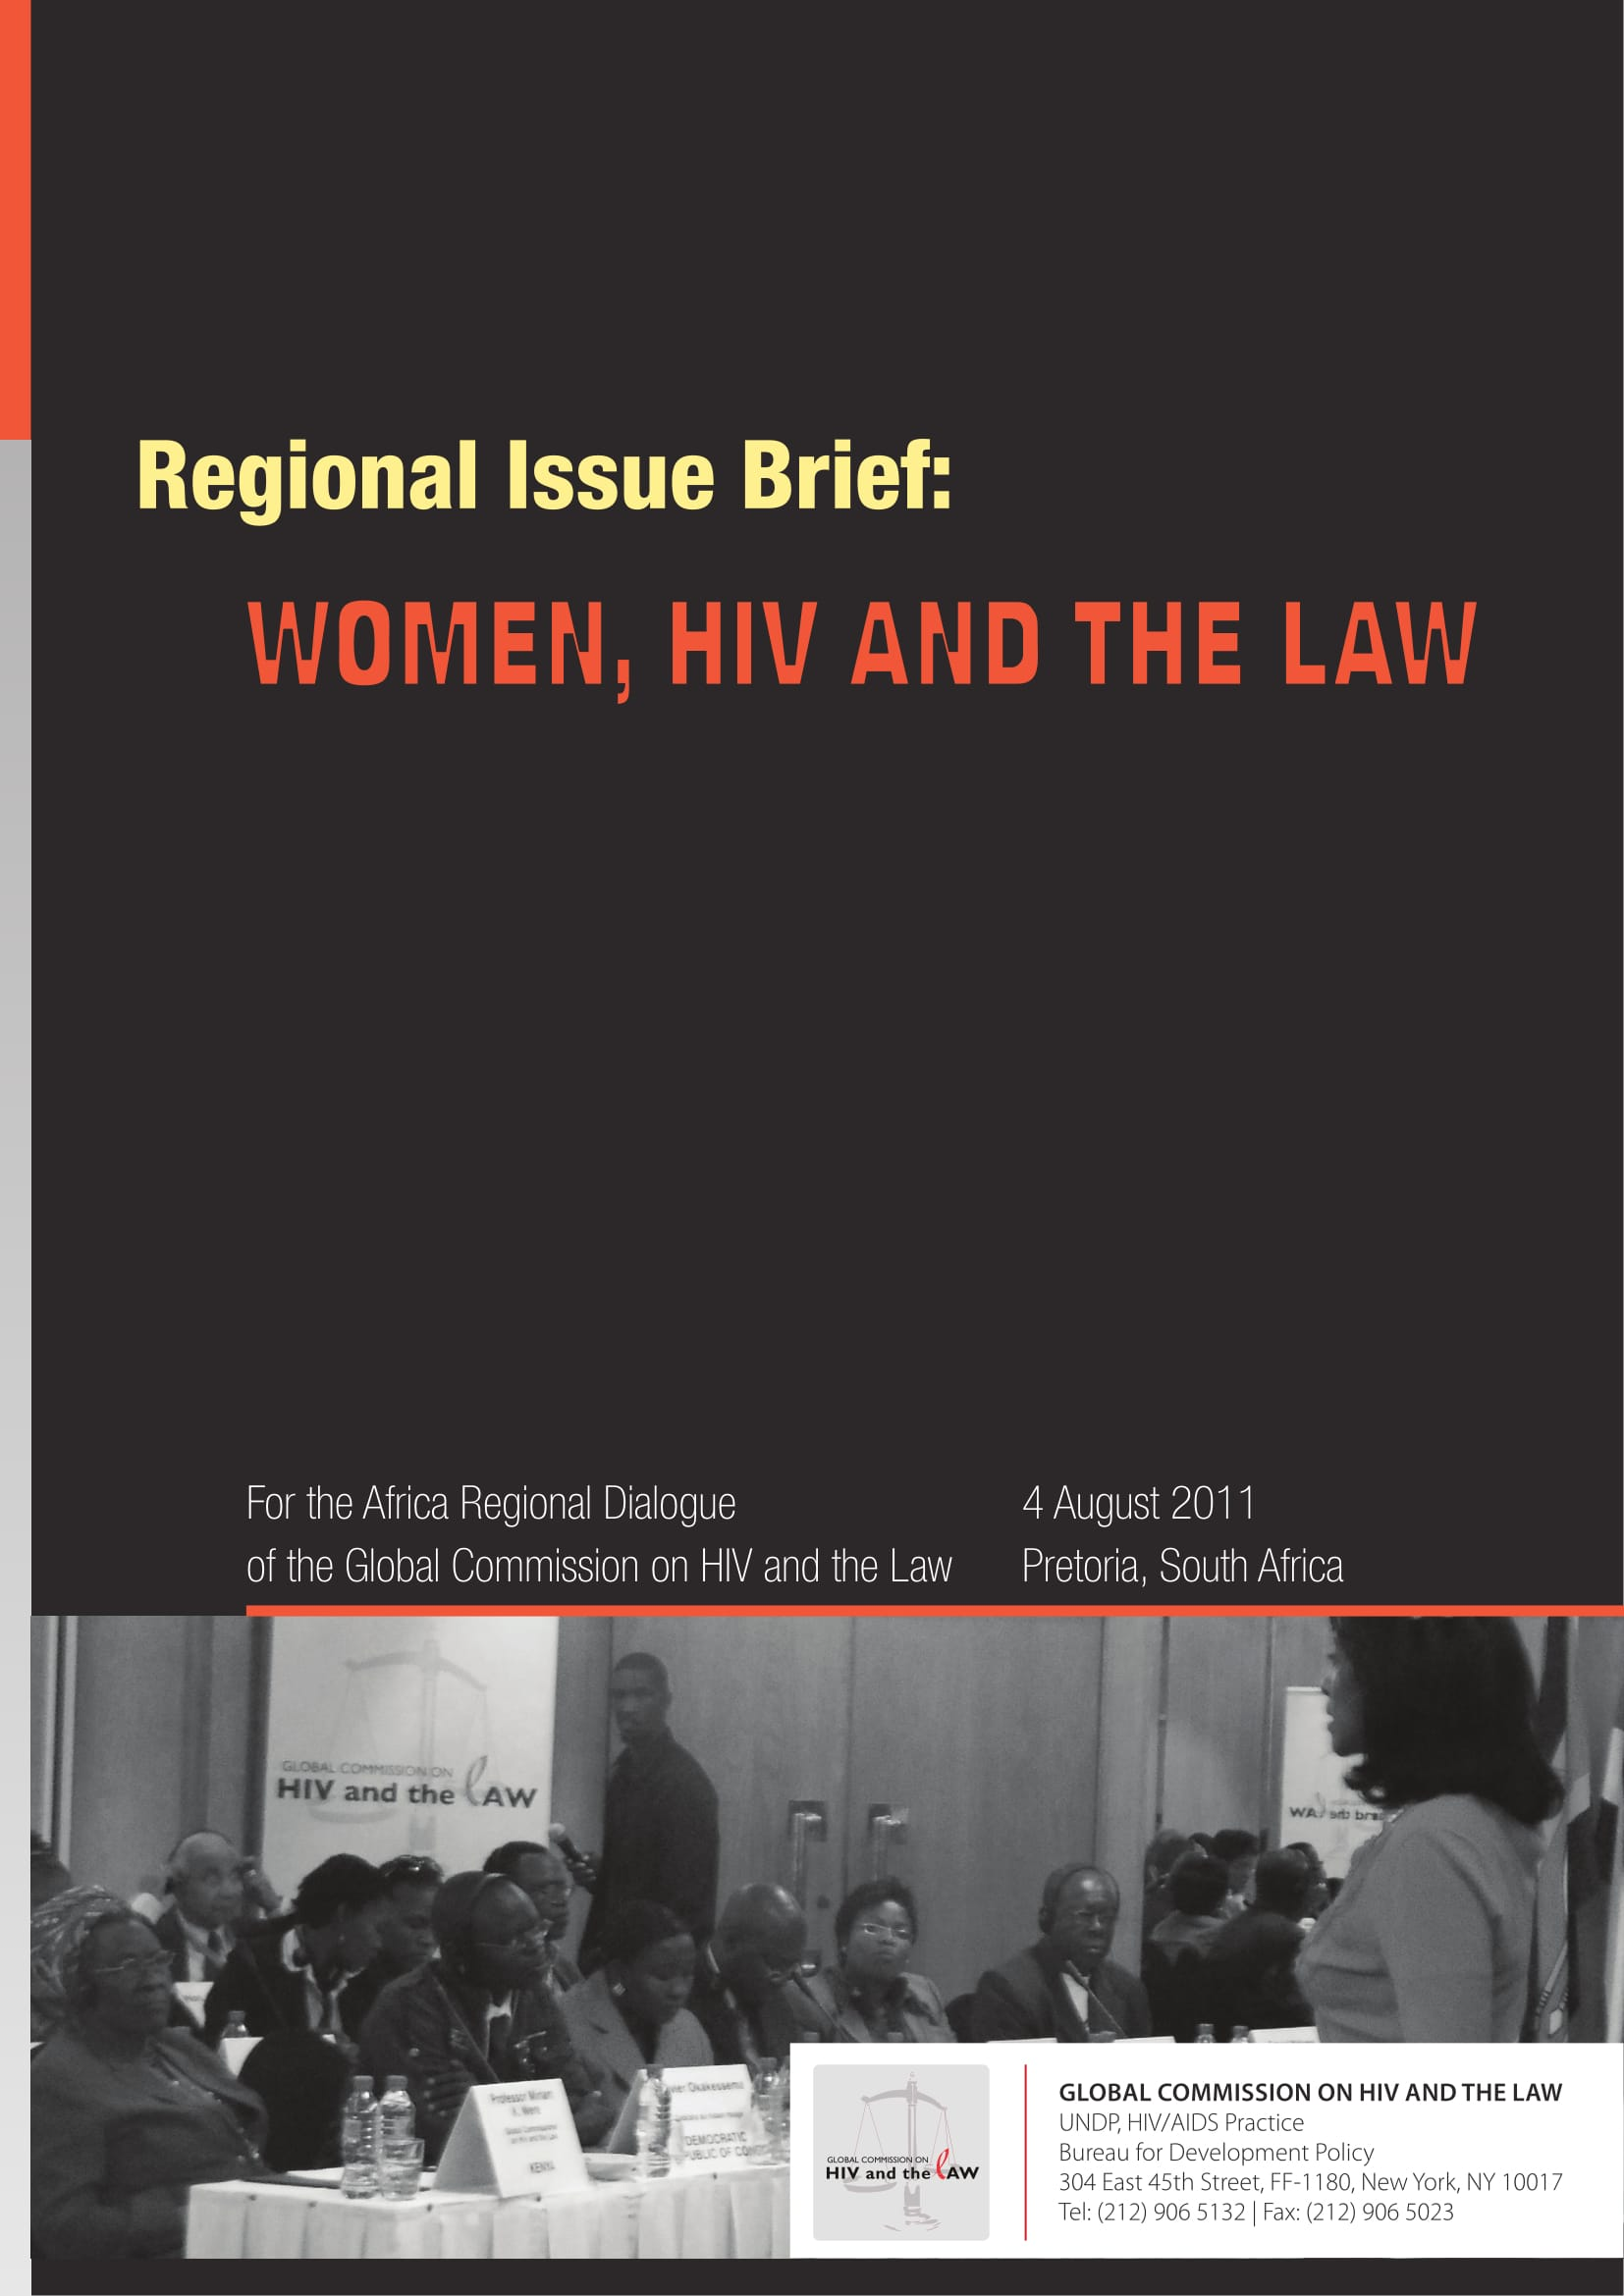 Regional Issue Brief: Women, HIV and the Law